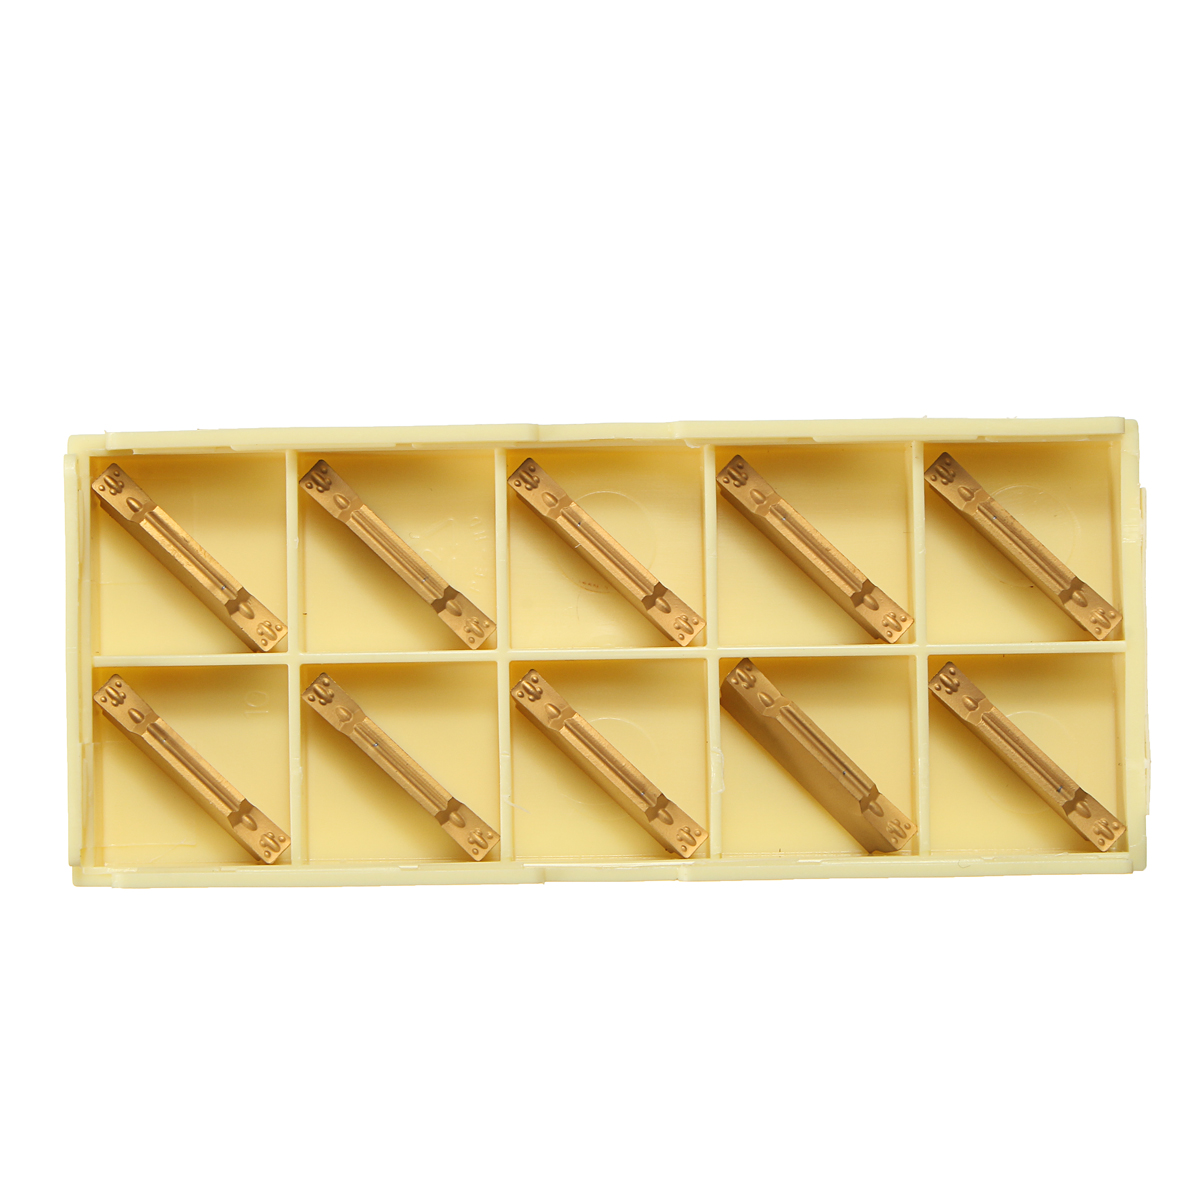 10pcs MGMN300-M Carbide Inserts 3mm Width for MGEHR//MGIVR Grooving Cut-Off Tool